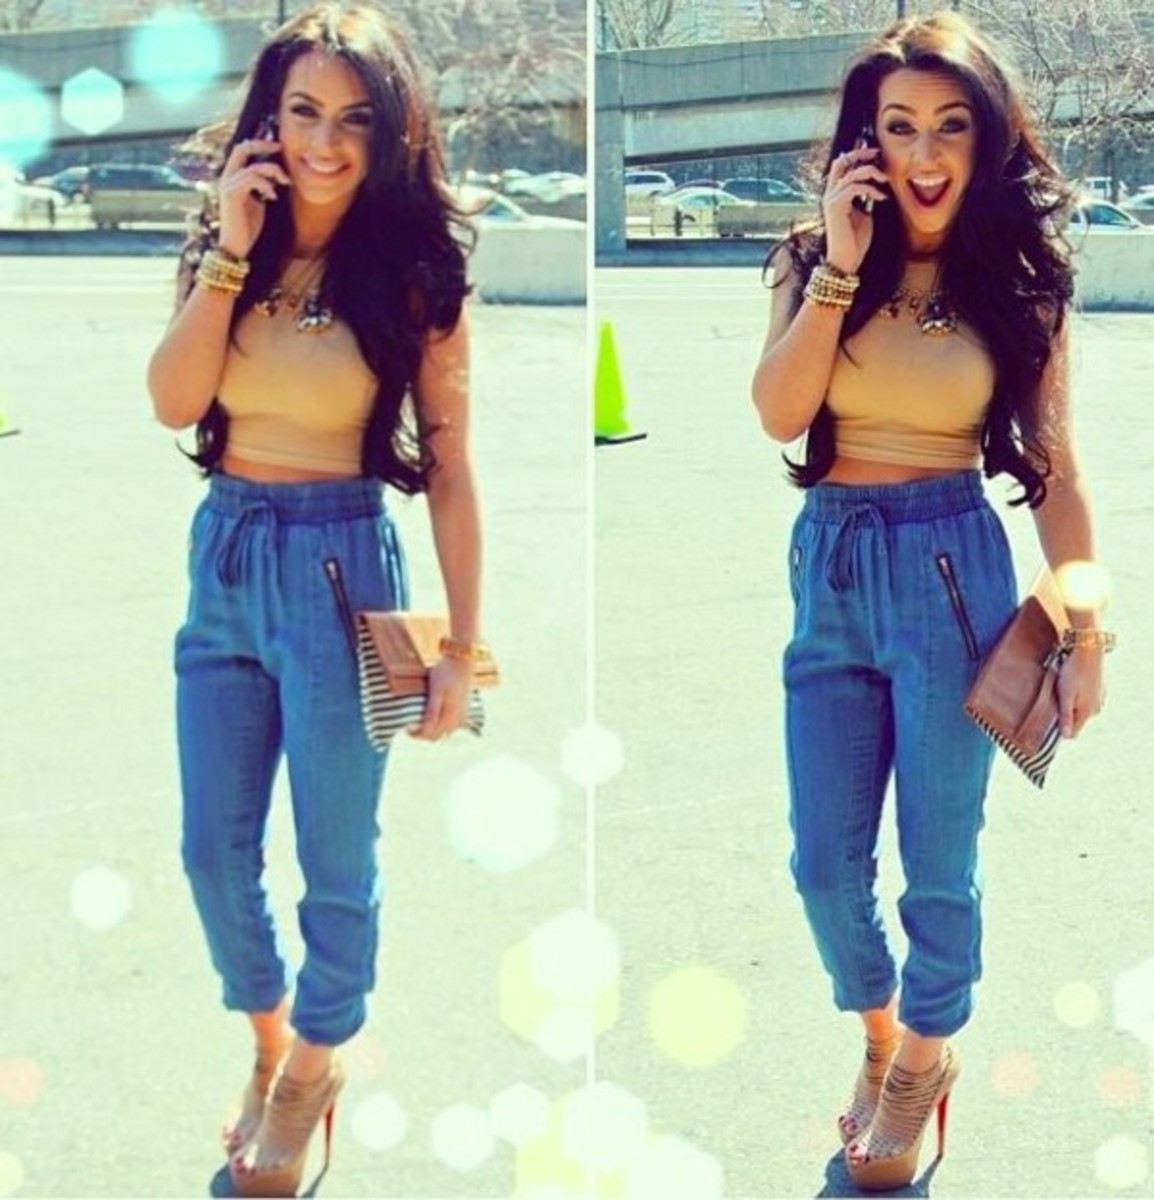 High heels look amazing with joggers, especially on petite girls.